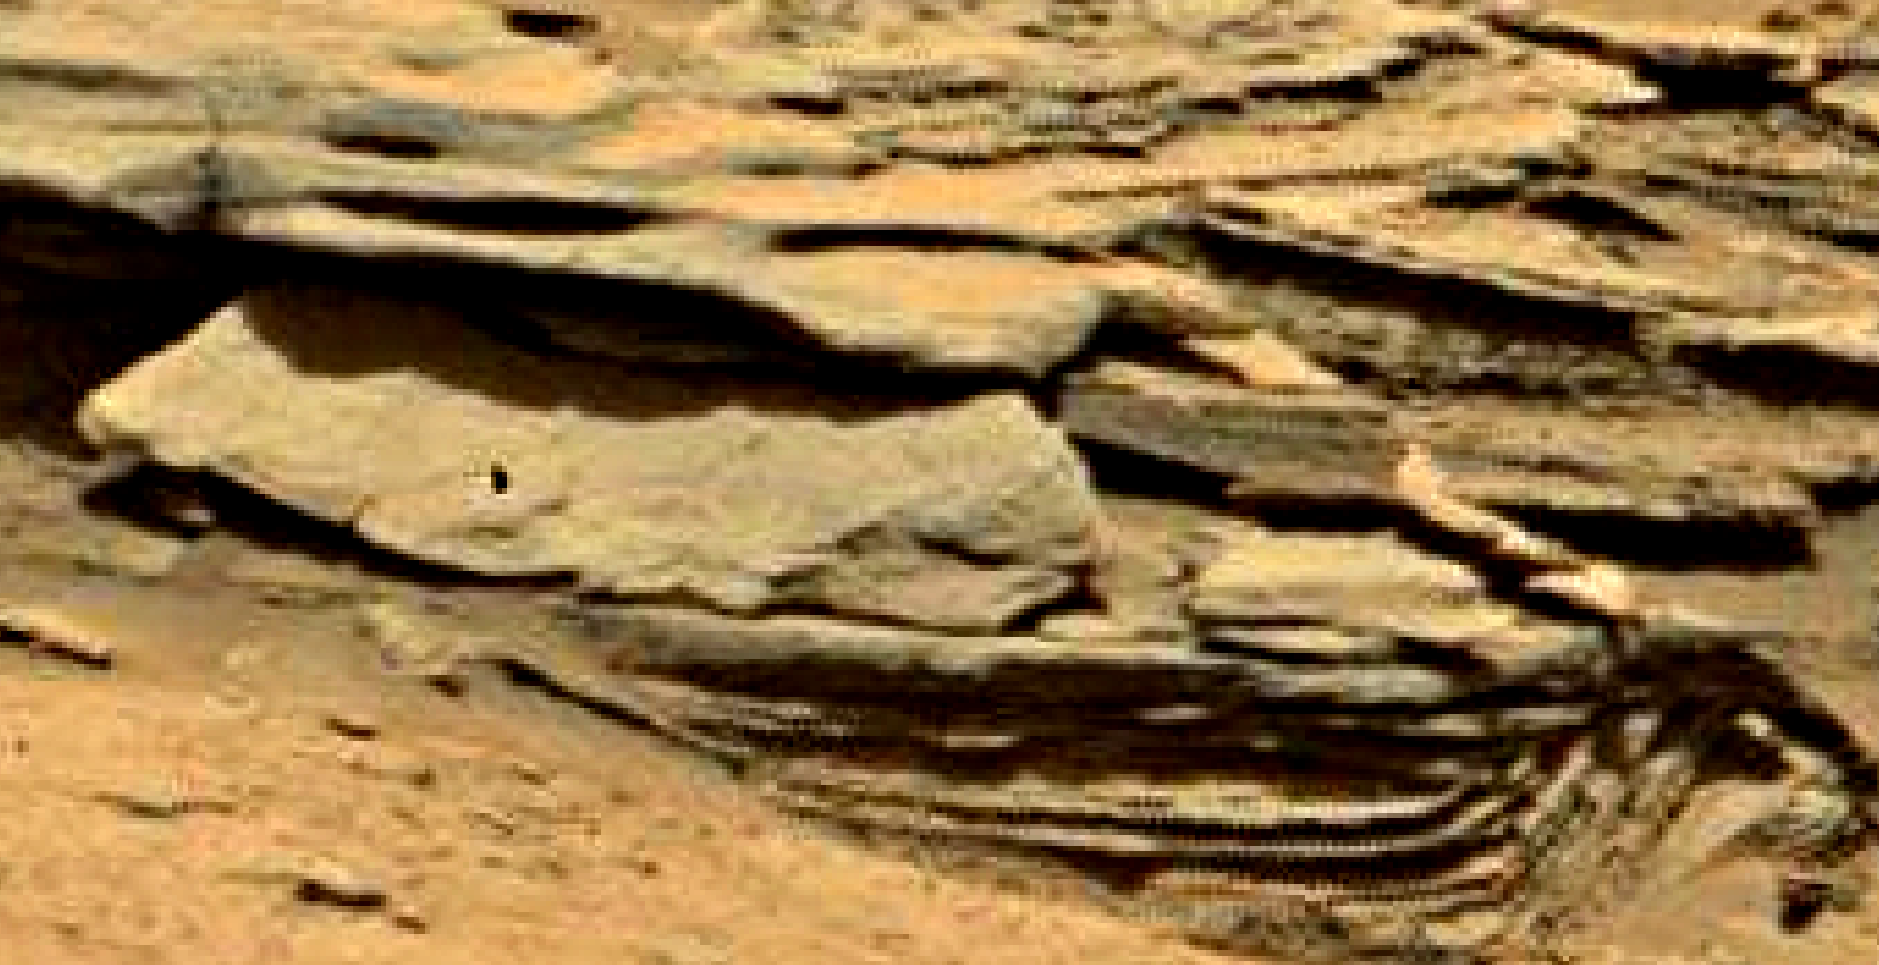 mars sol 1353 anomaly-artifacts 18 was life on mars